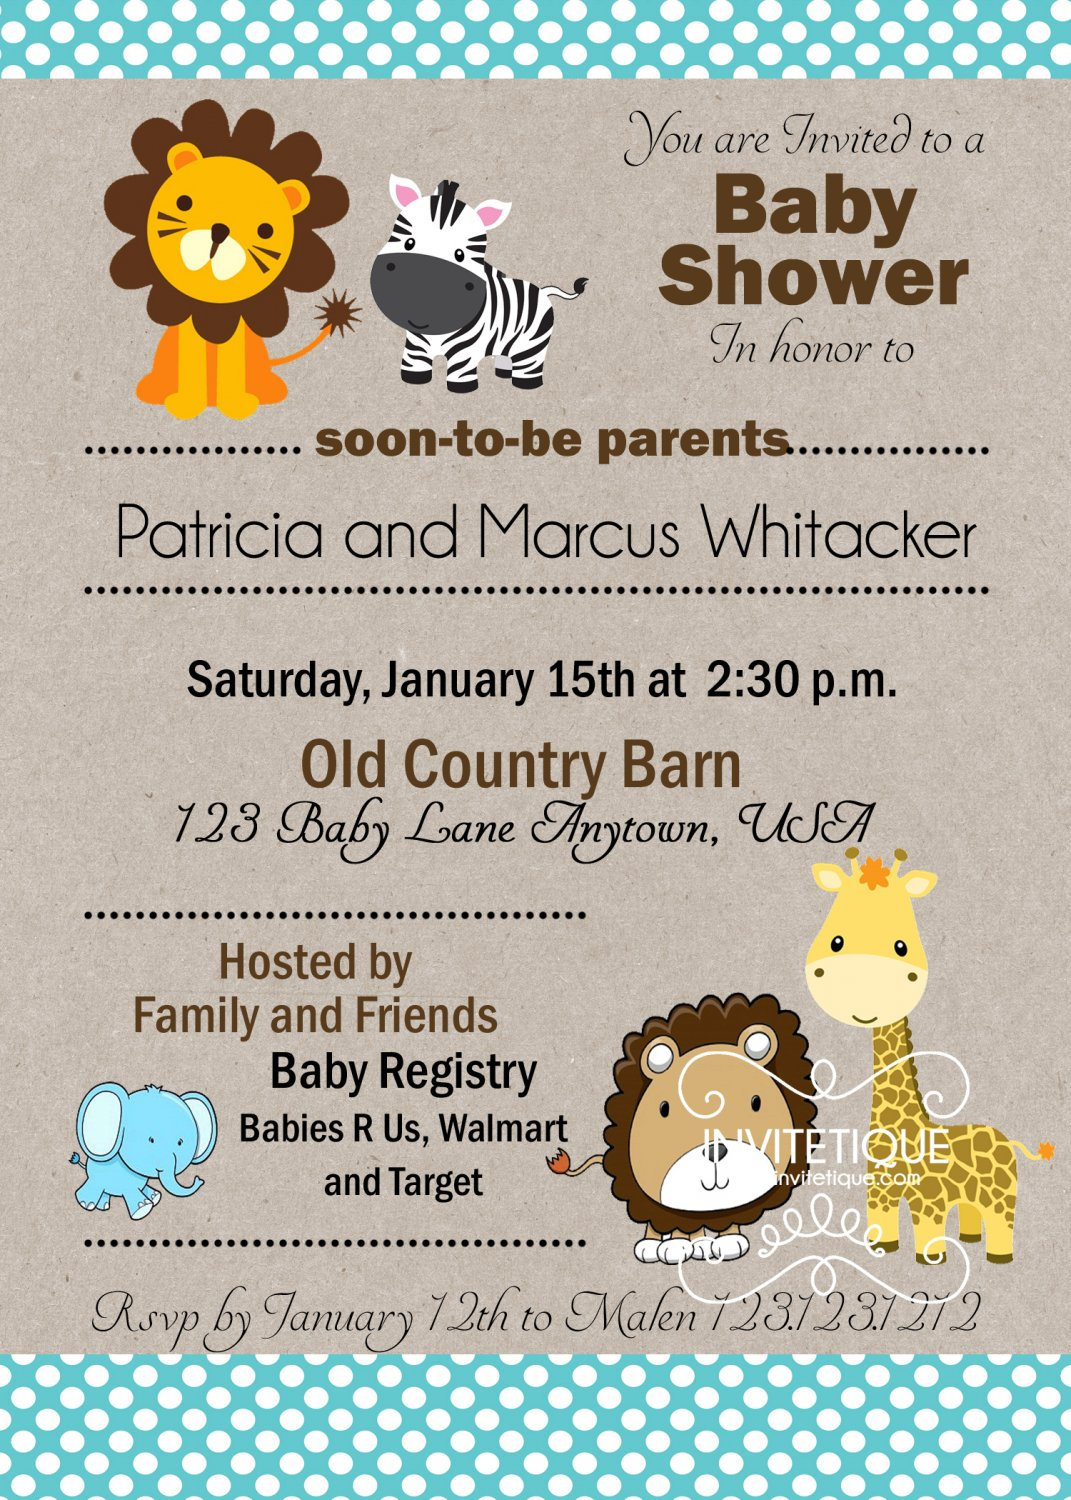 Zoo, Jungle, Safari Animals Blue Polka Dots Baby Shower Invitation - Customizable